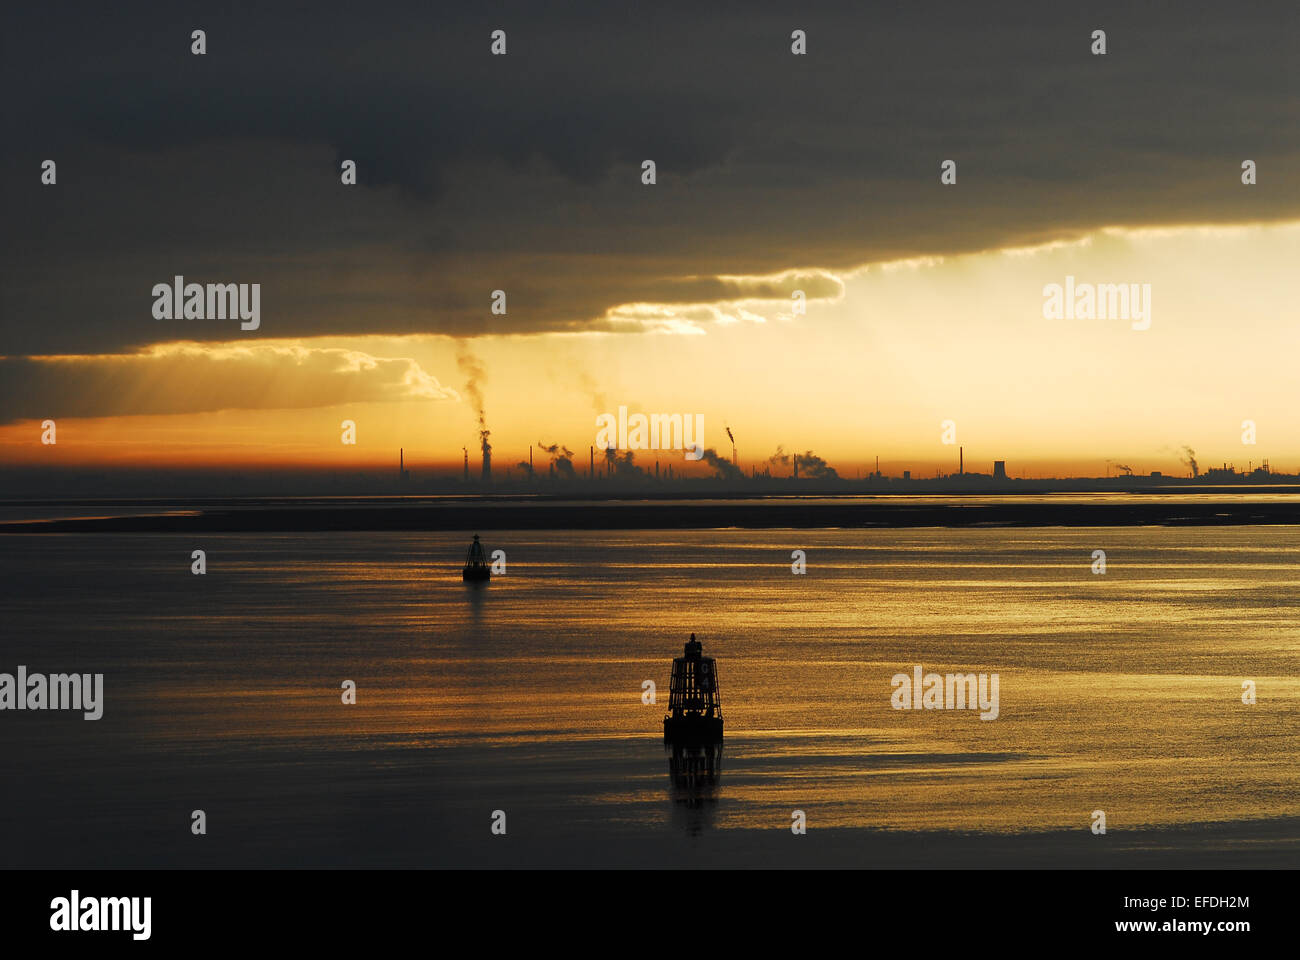 Smoke from from cooling towers at the Fiddlers Ferry power station can be seen across the River Mersey at sunrise. Stock Photo